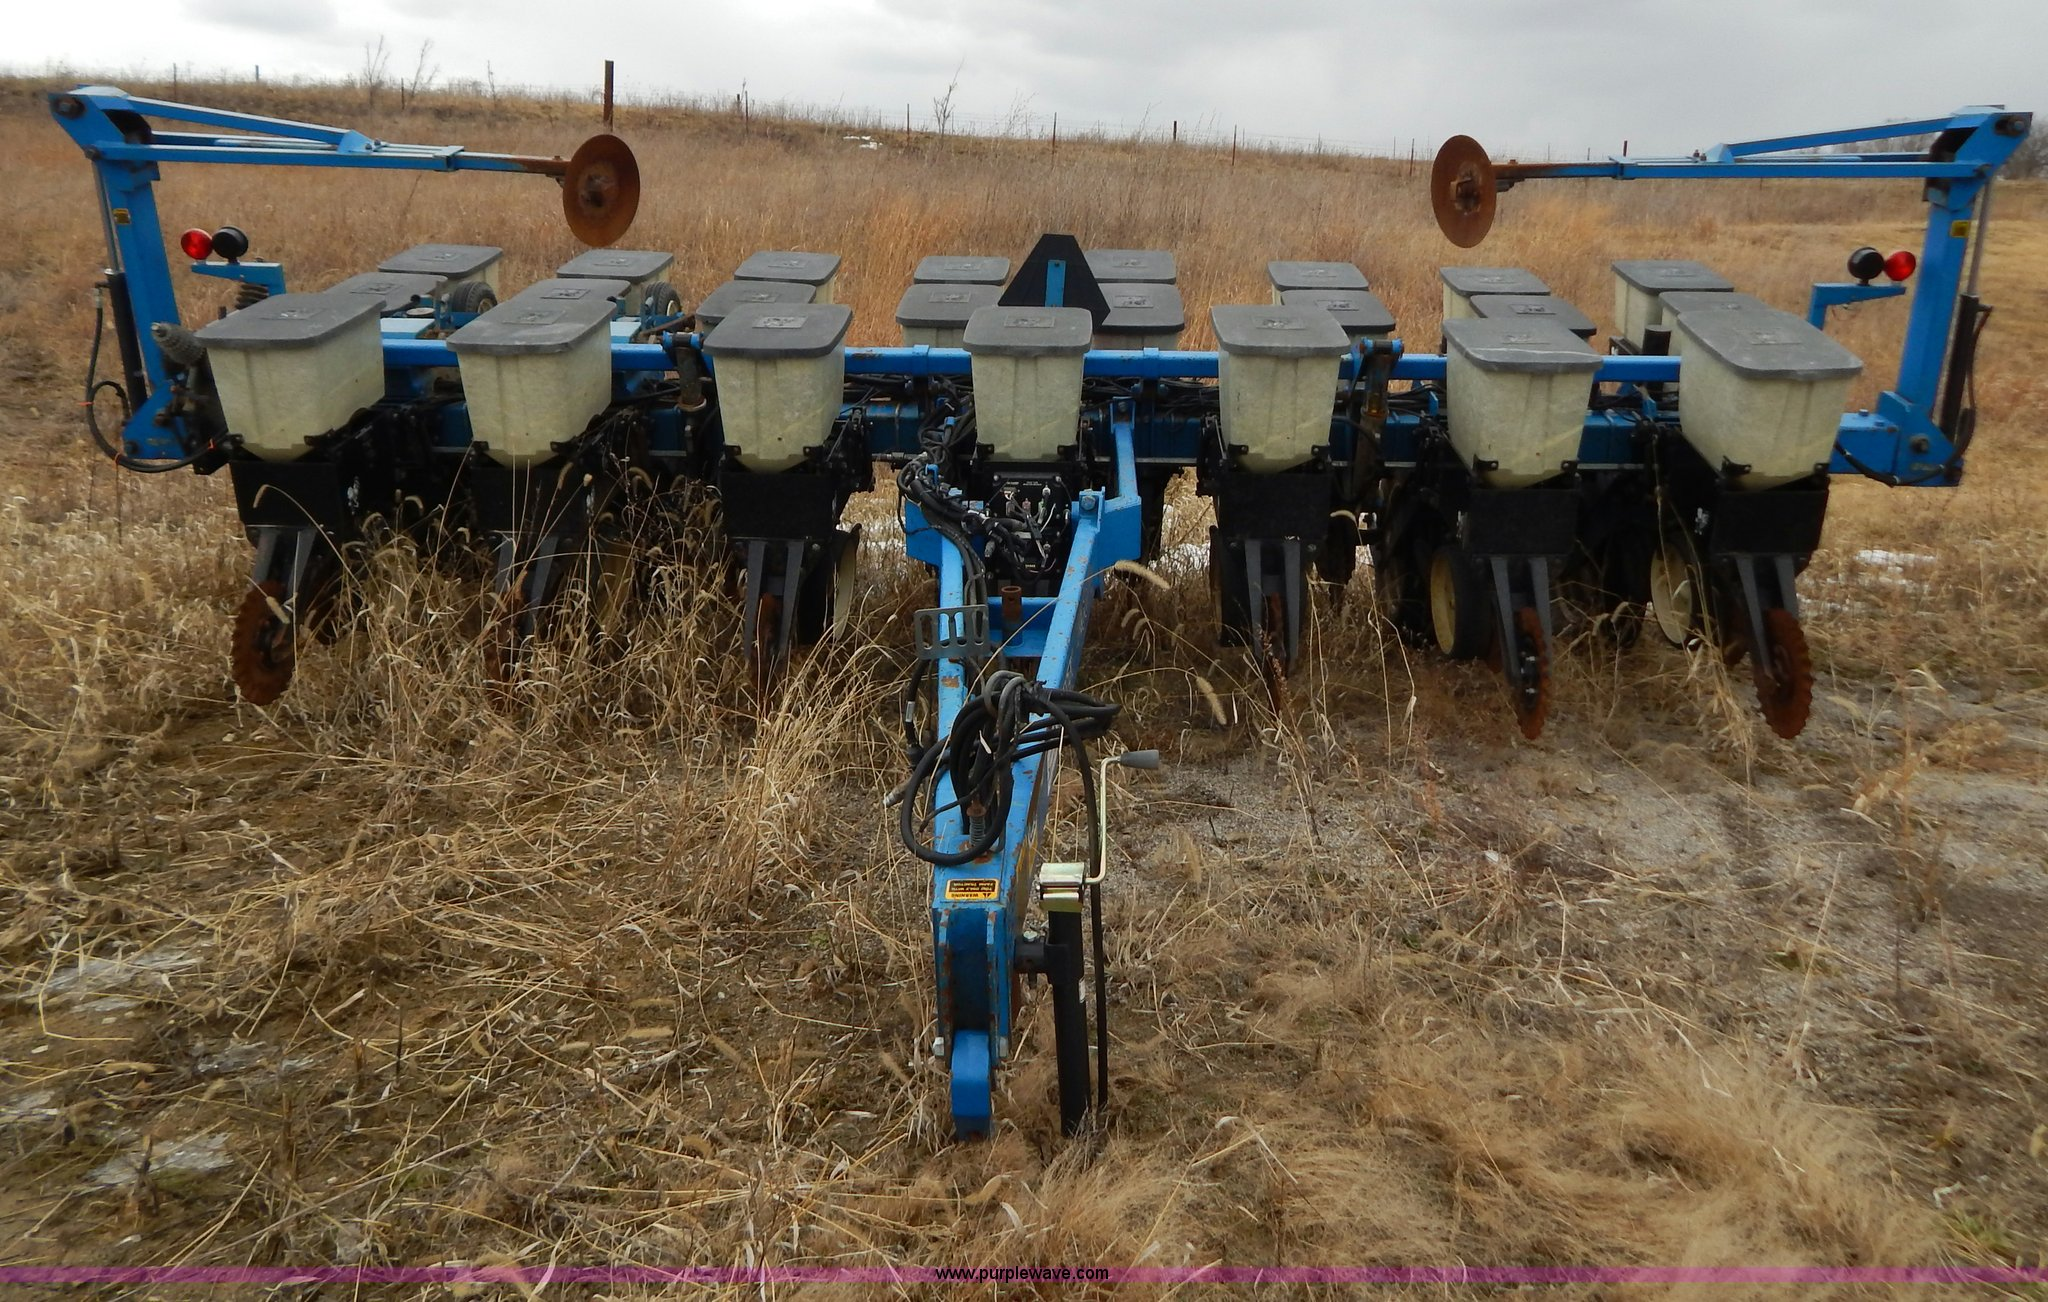 Wrg 9303 2000 Kinze Planter Monitor Manual 2019 Ebook Library